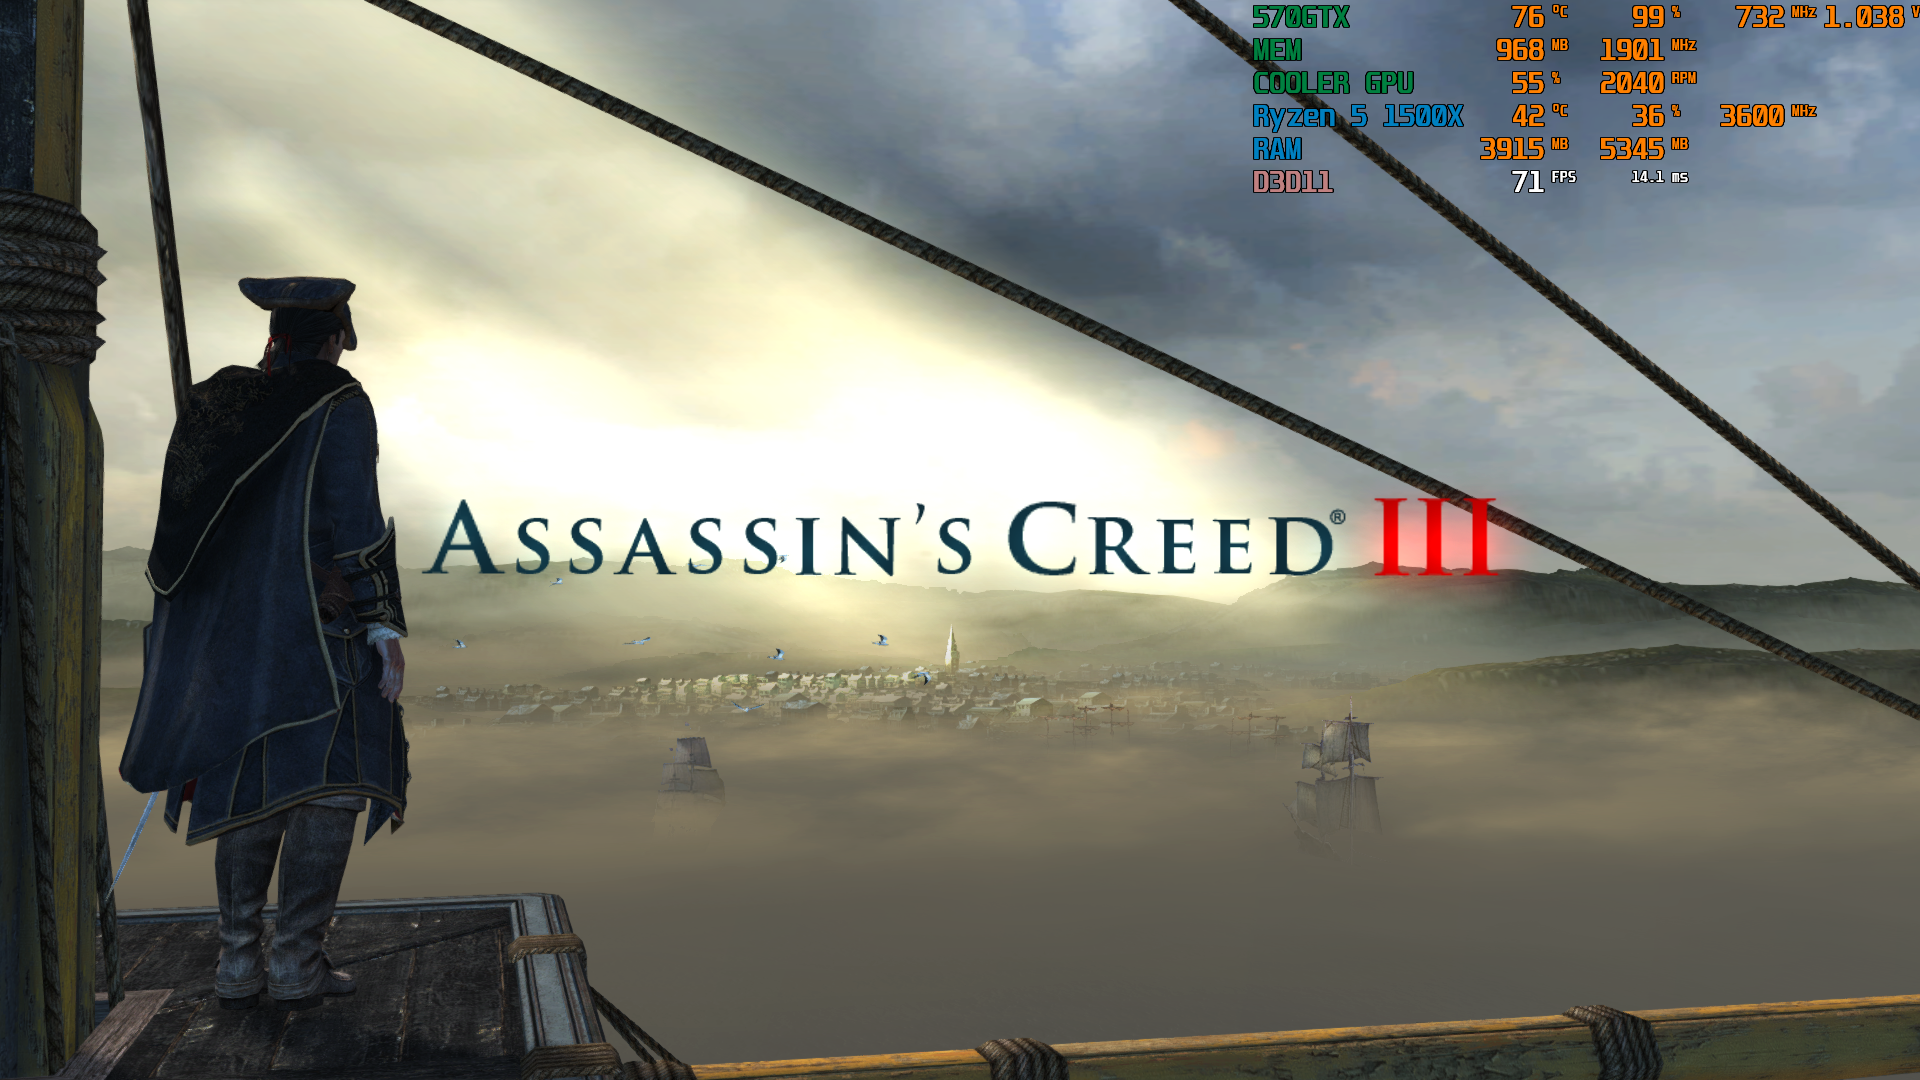 AC3SP_2018_09_21_22_48_01_311.png - Assassin's Creed 3